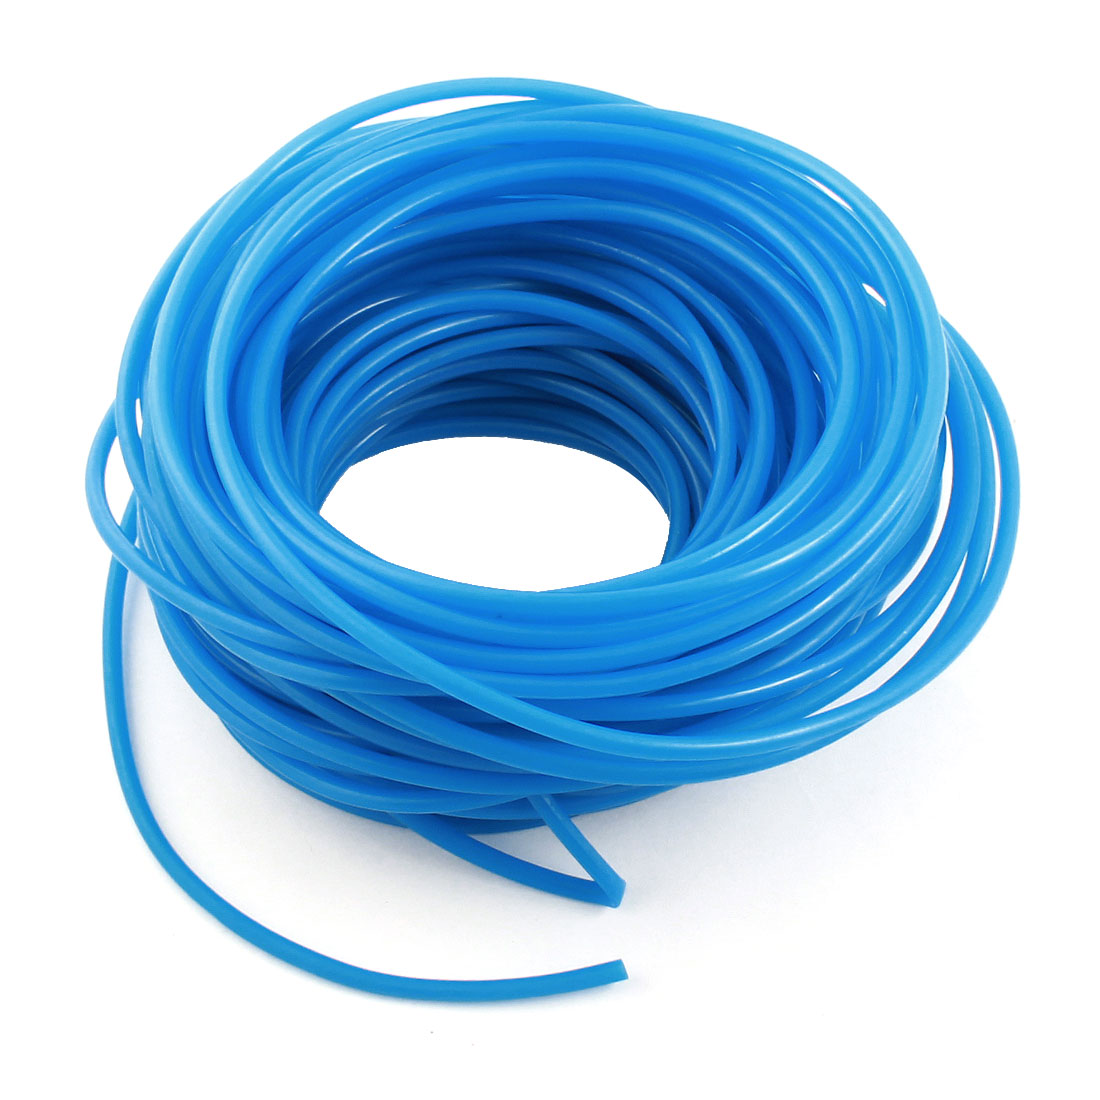 25Meter 2.5x4mm Air Compressor Fuel Gas Petrol Diesel PU Line Tube Hose Blue